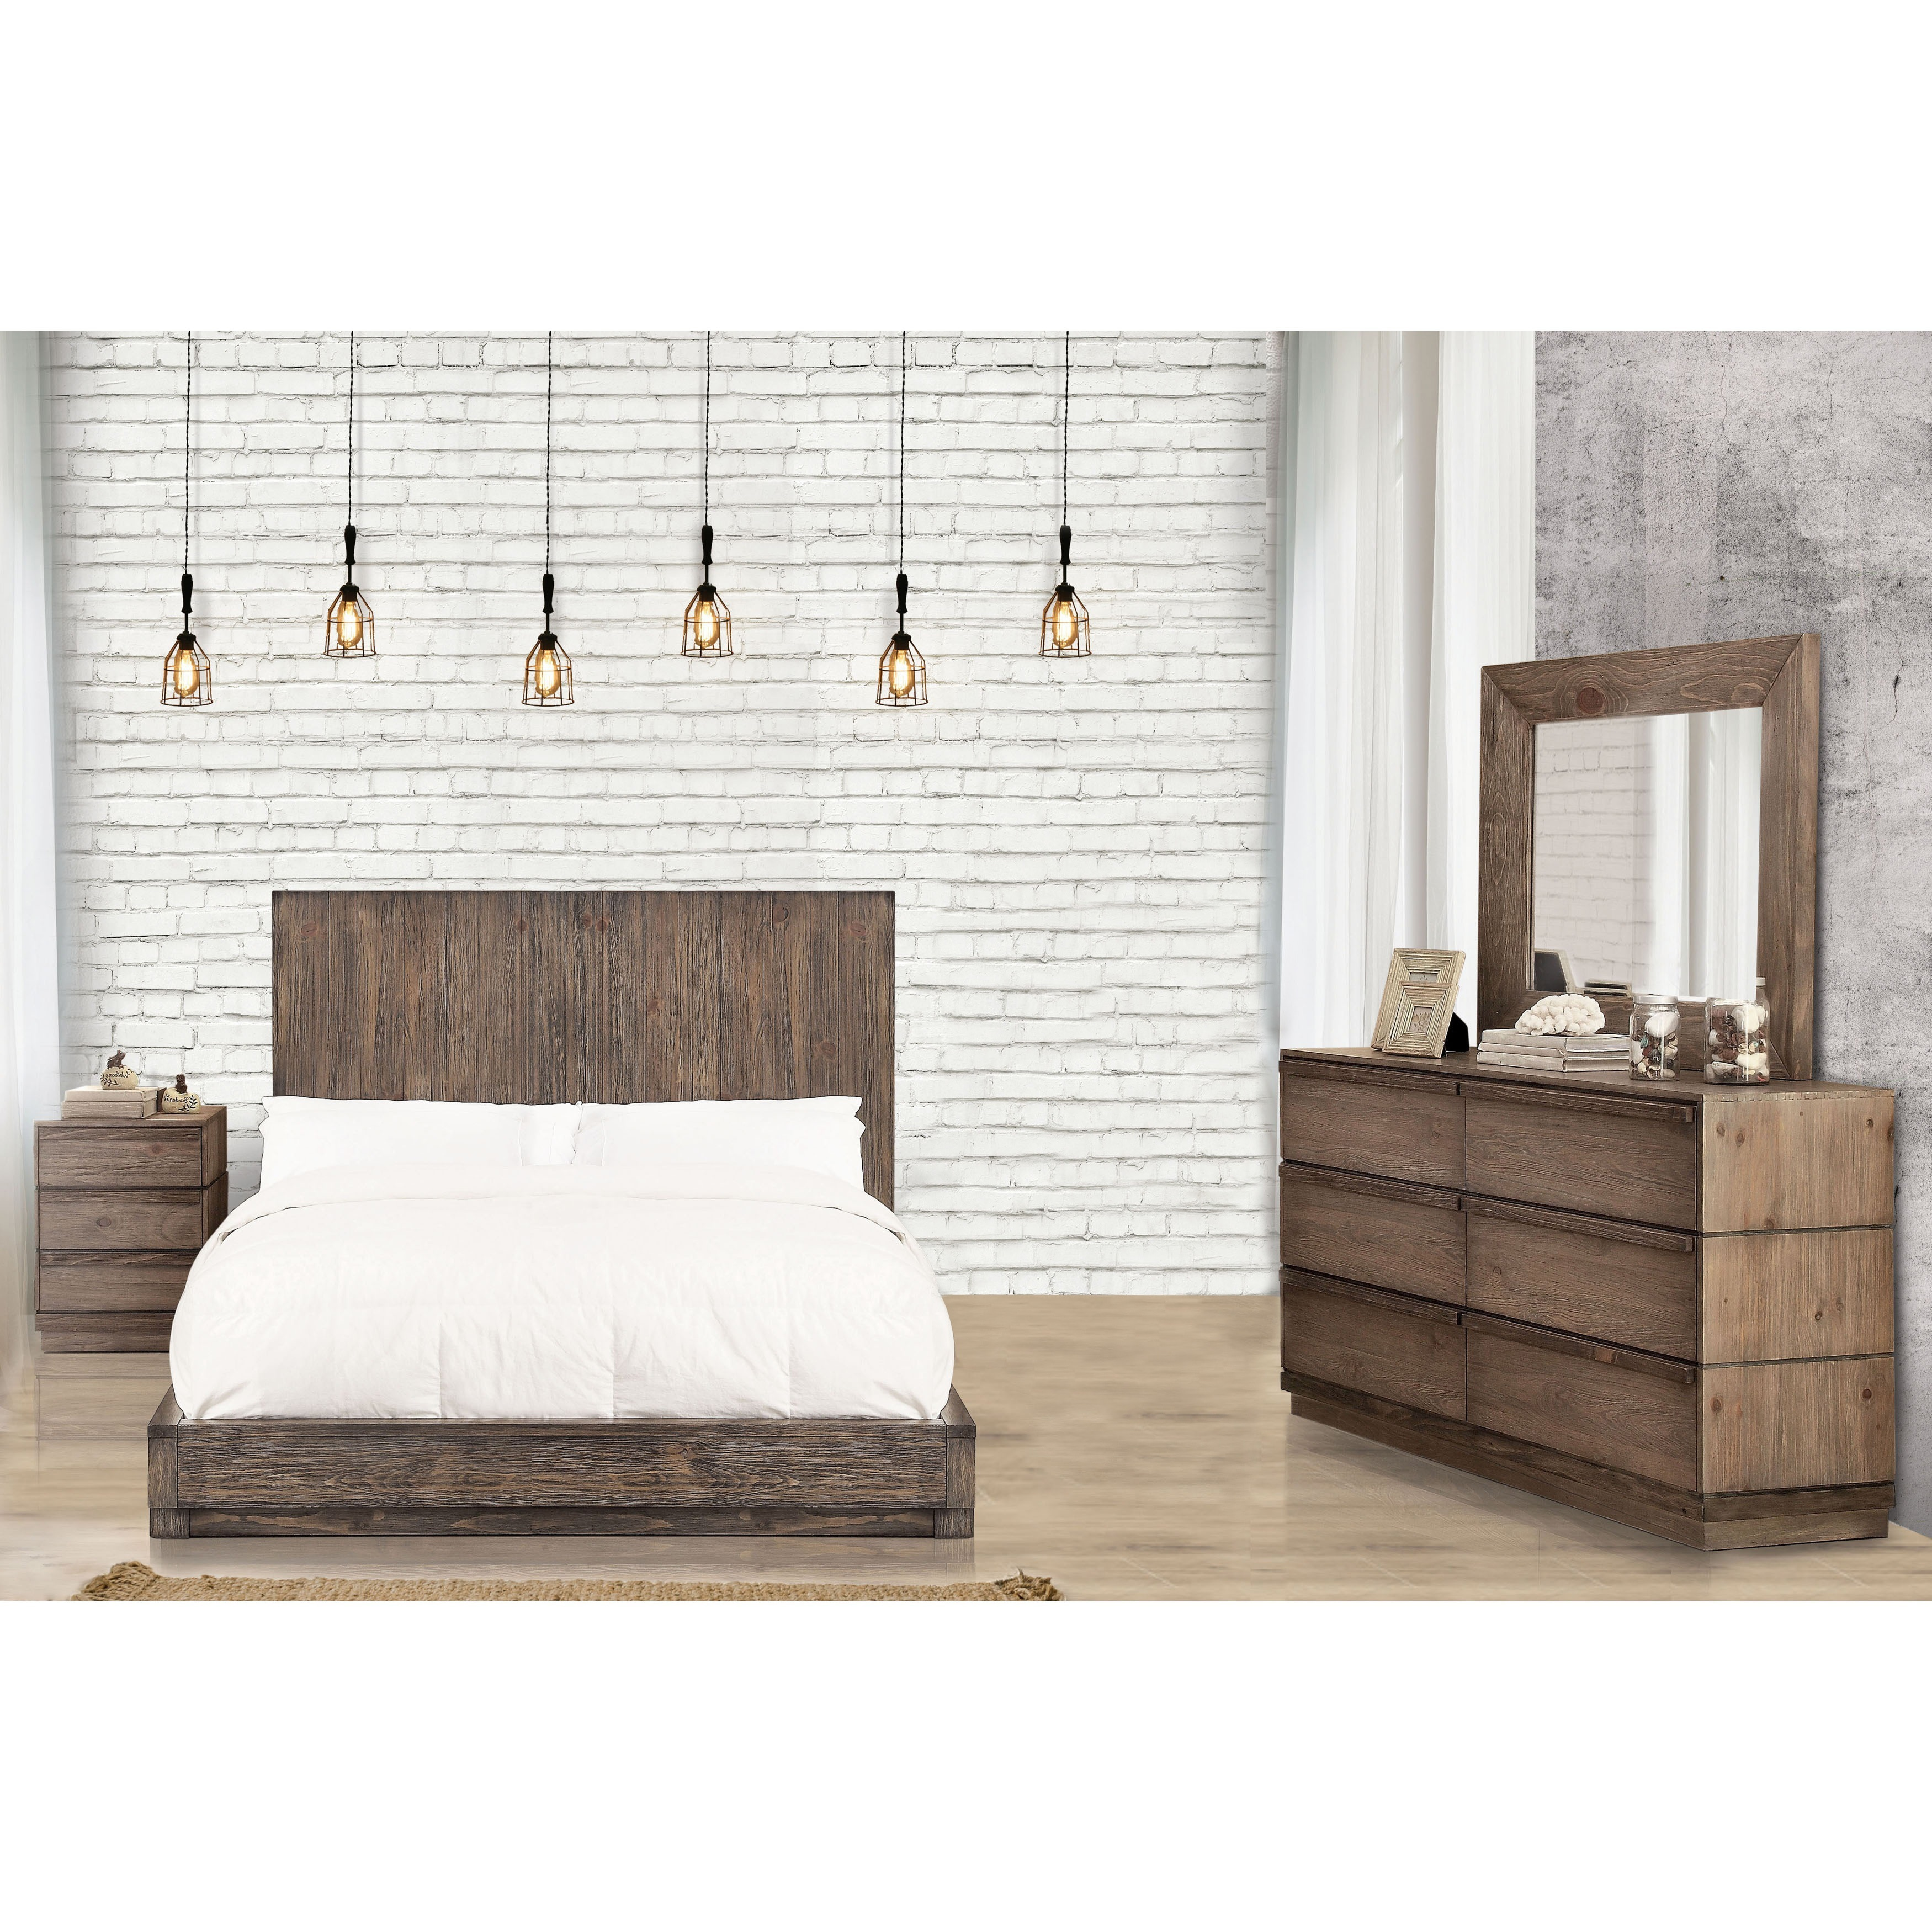 Shop furniture of america remings rustic 4 piece natural - Bedroom furniture set online shopping ...